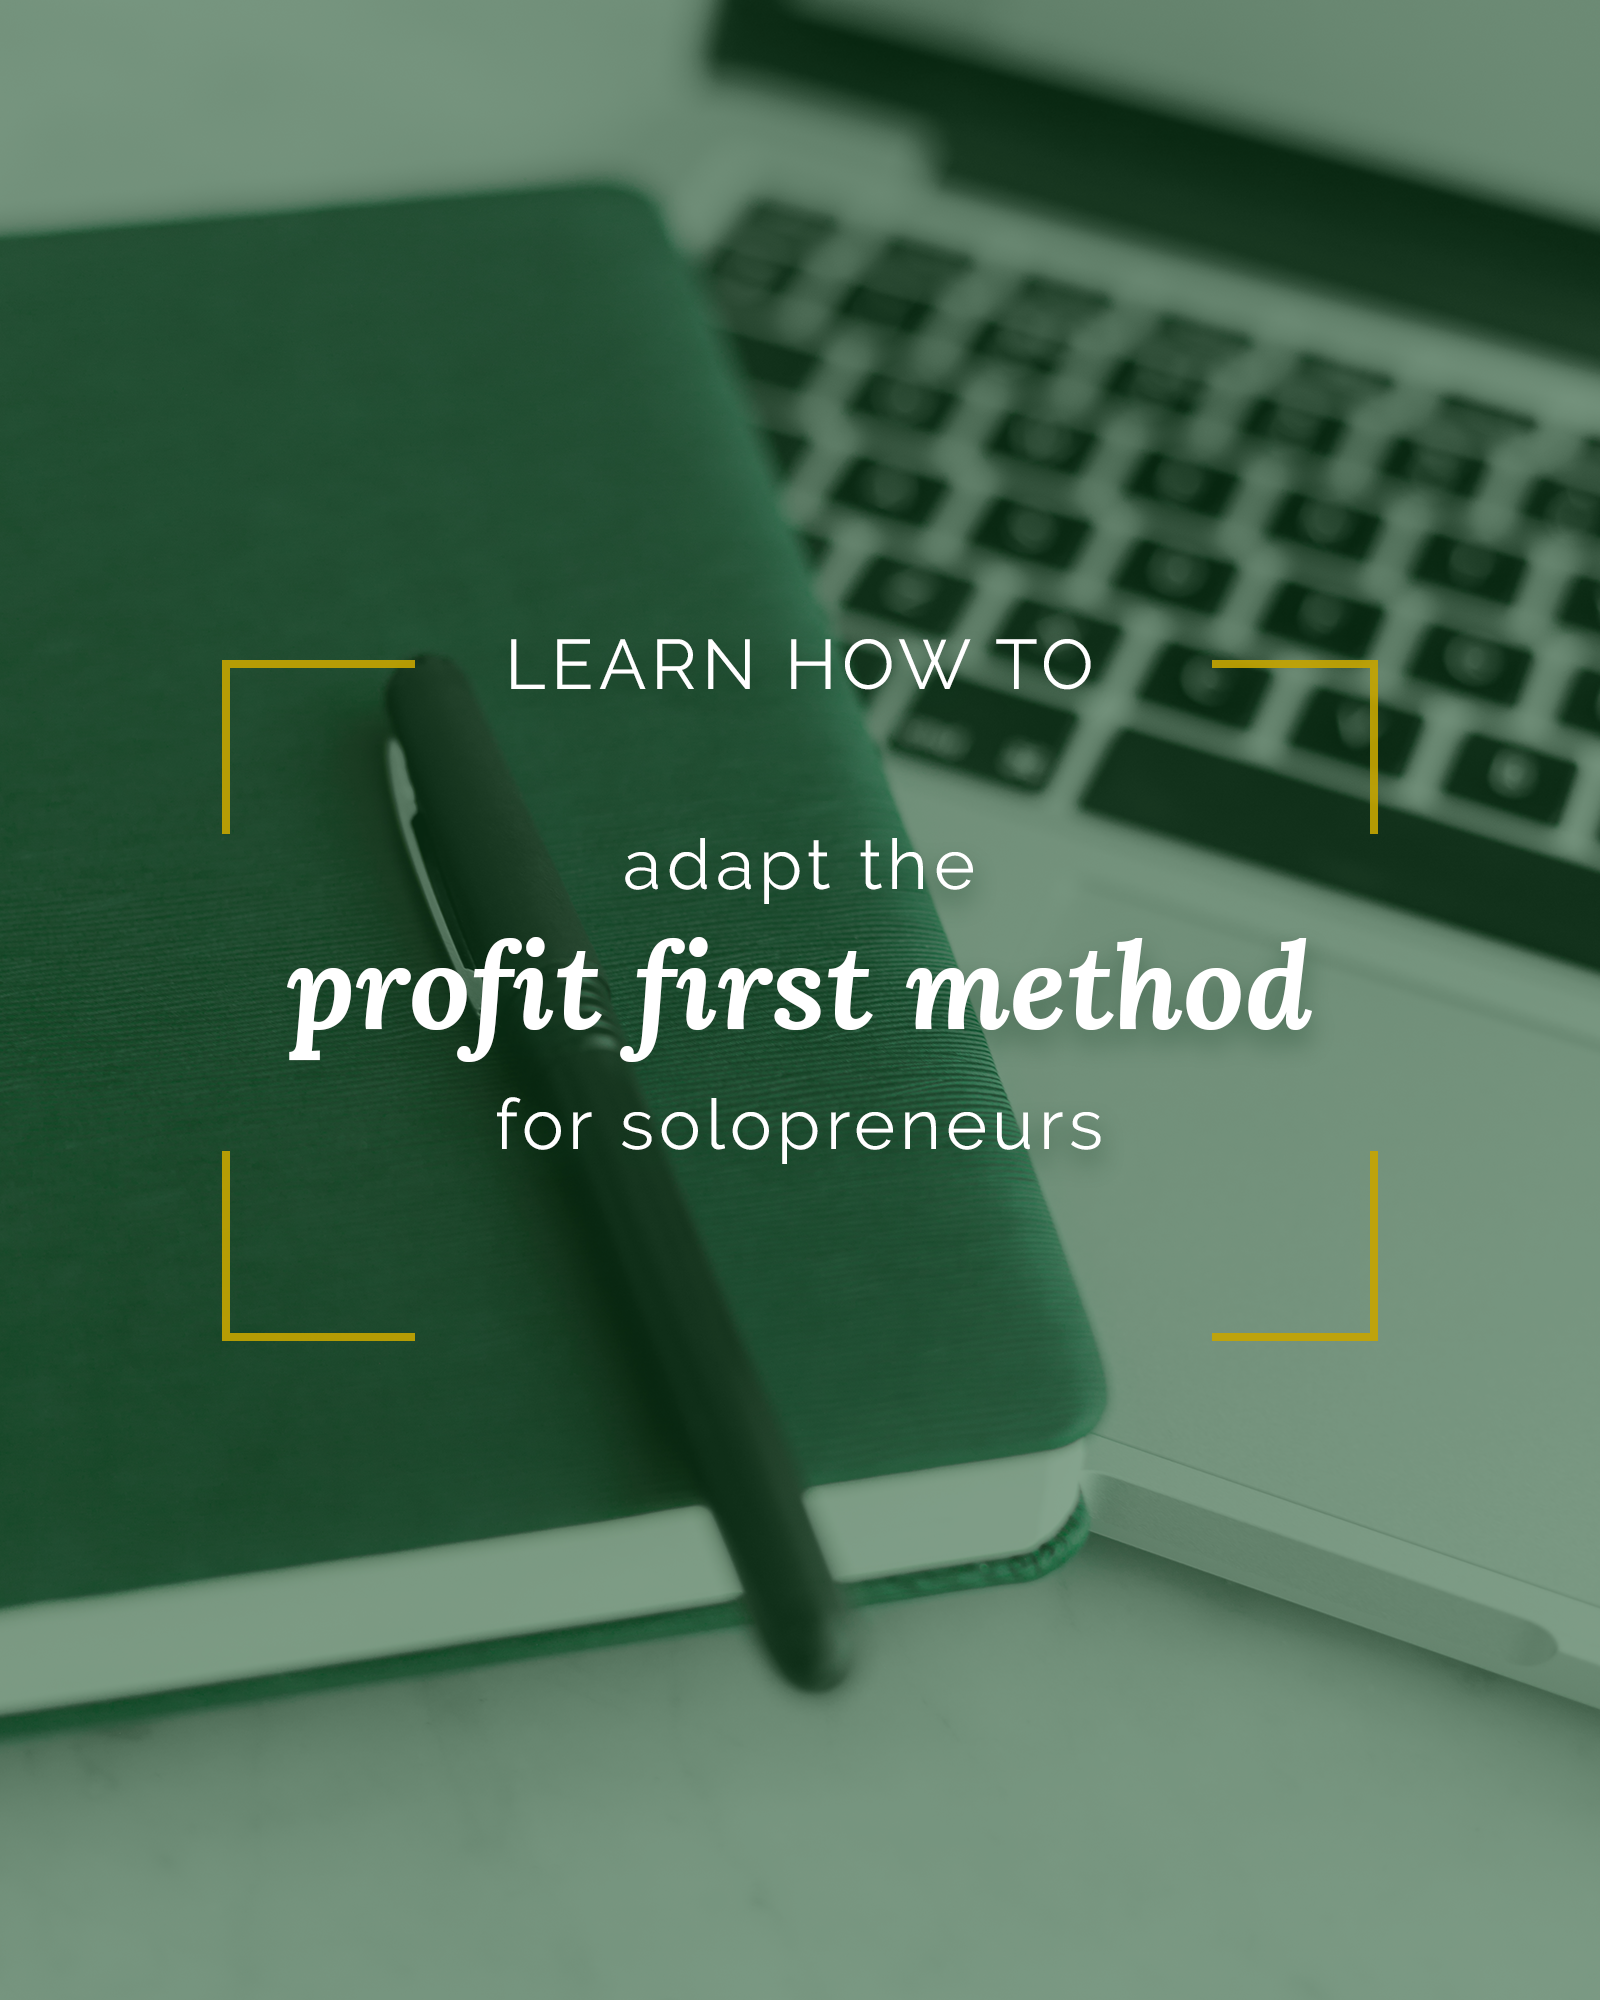 learn-to-adapt-profit-first-method-online-solopreneurspng